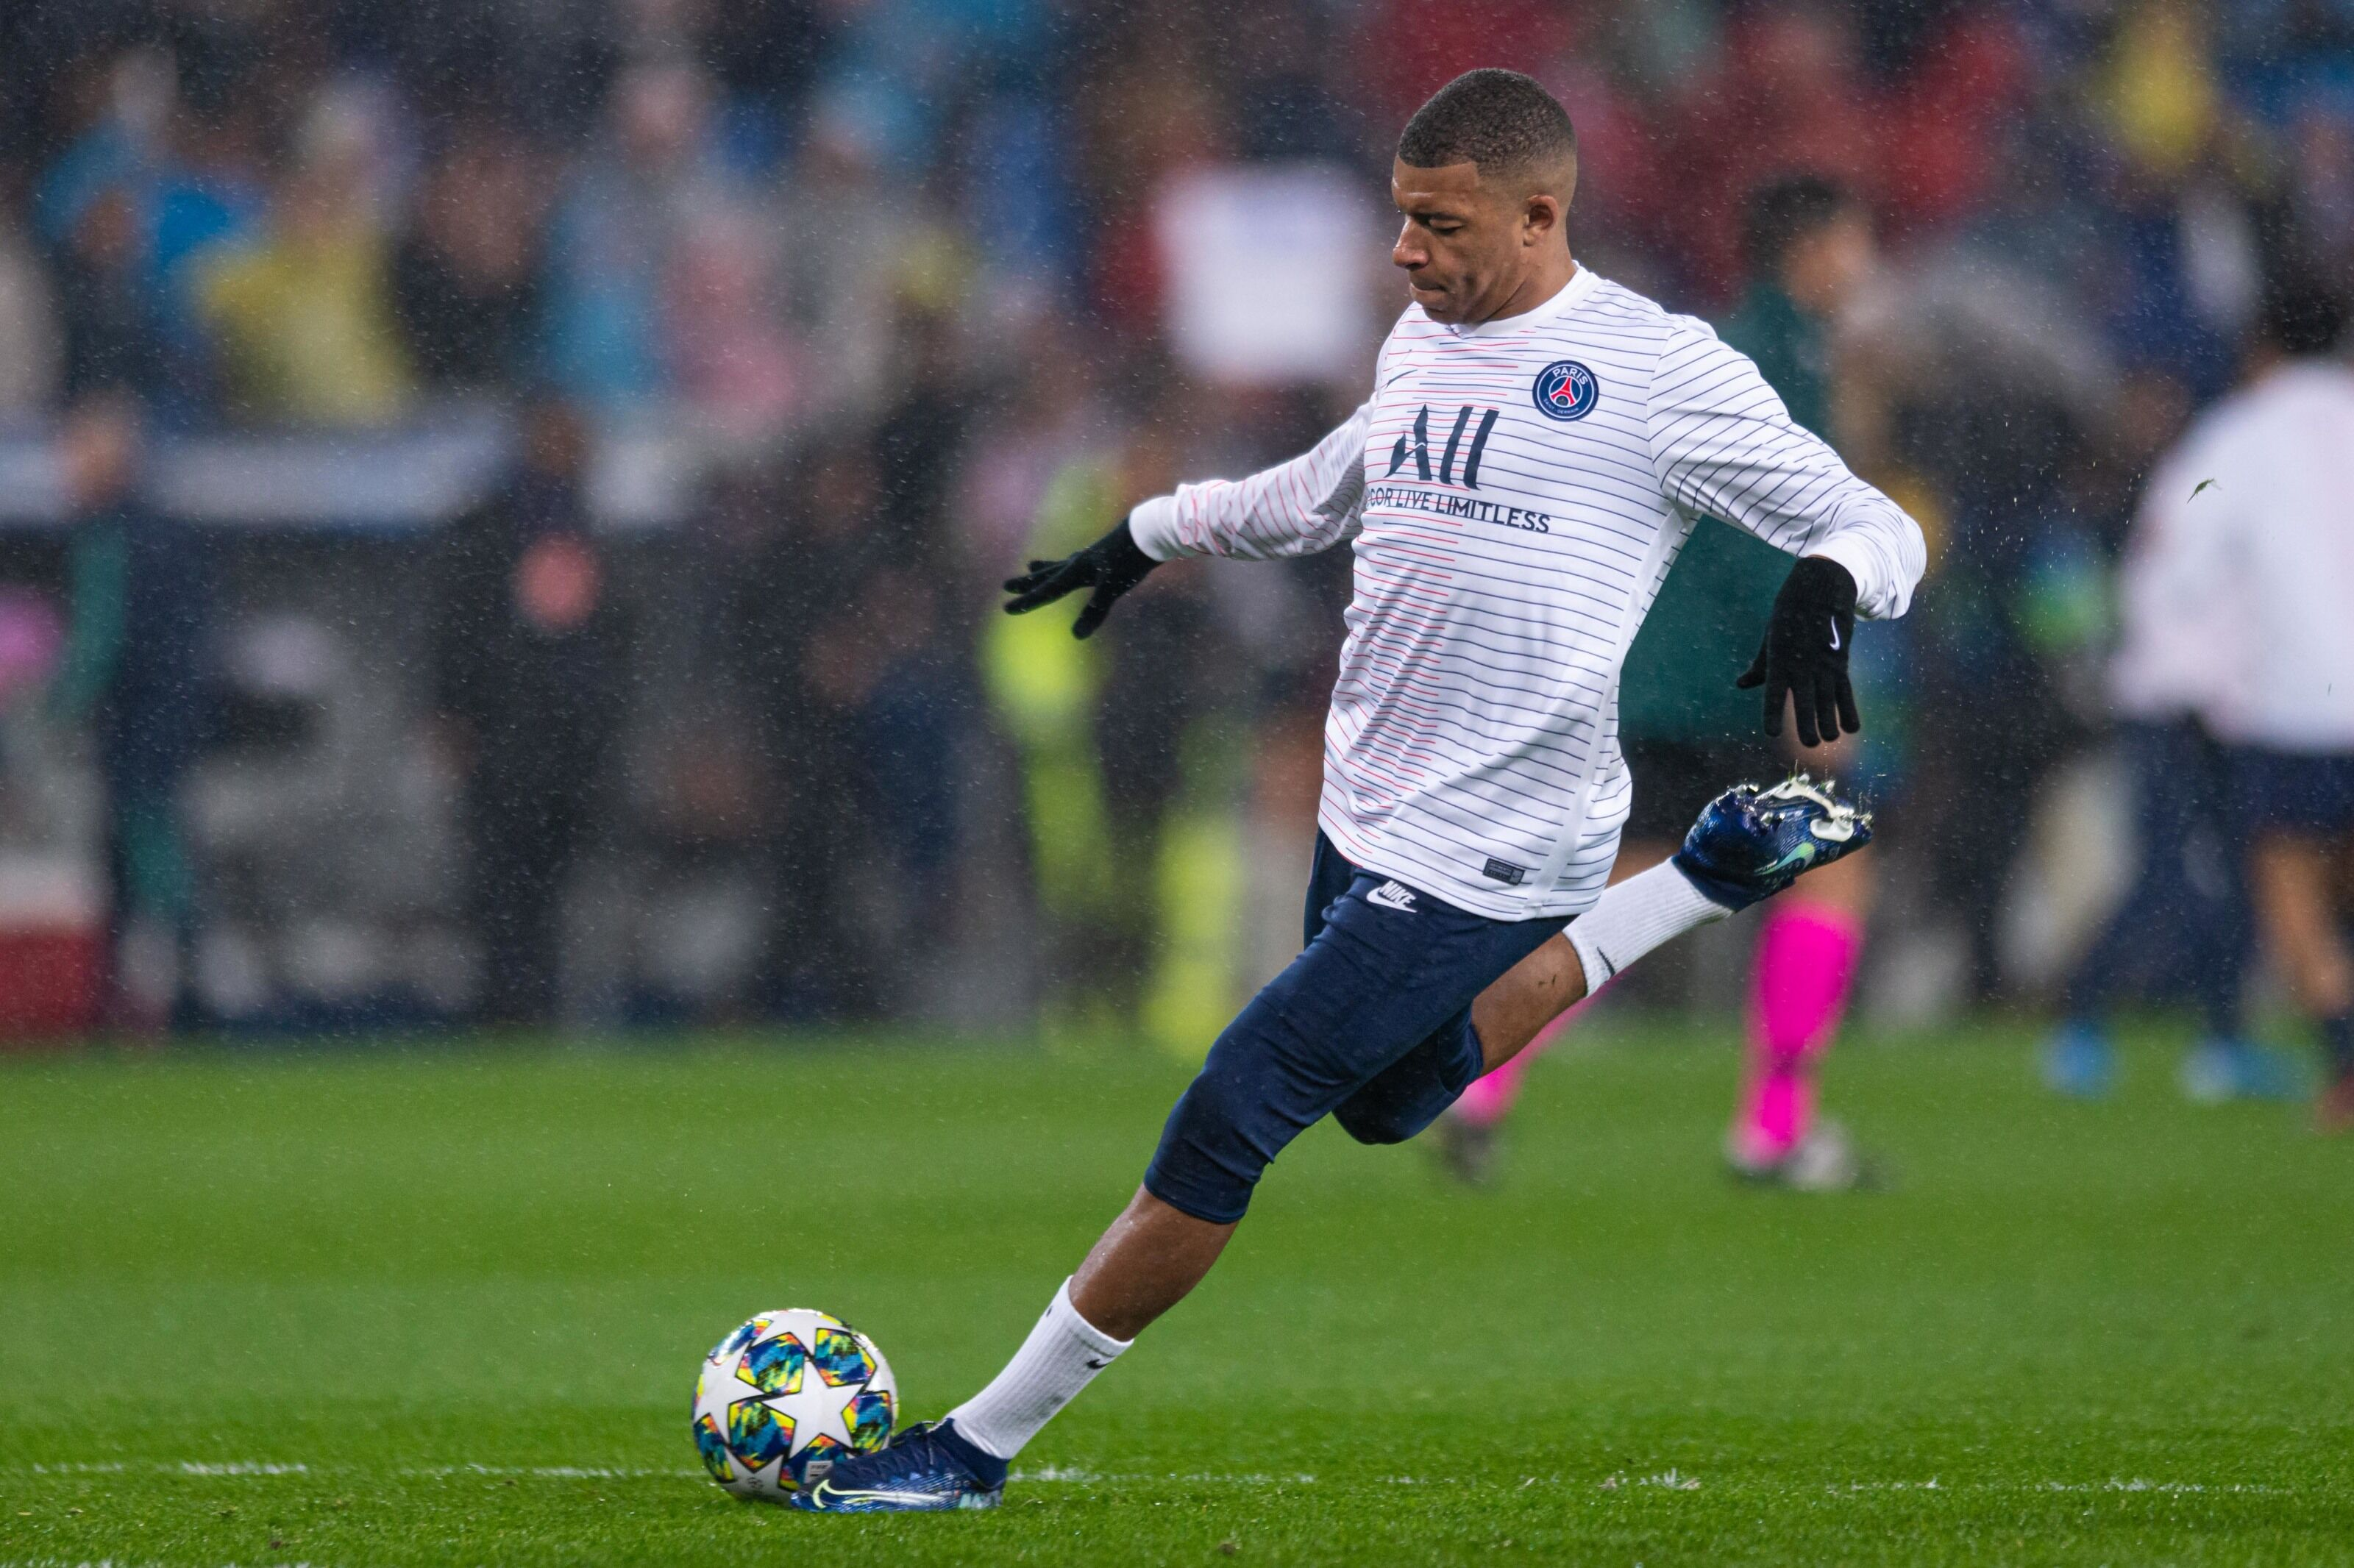 Kylian Mbappe makes luxurious demands from Real Madrid